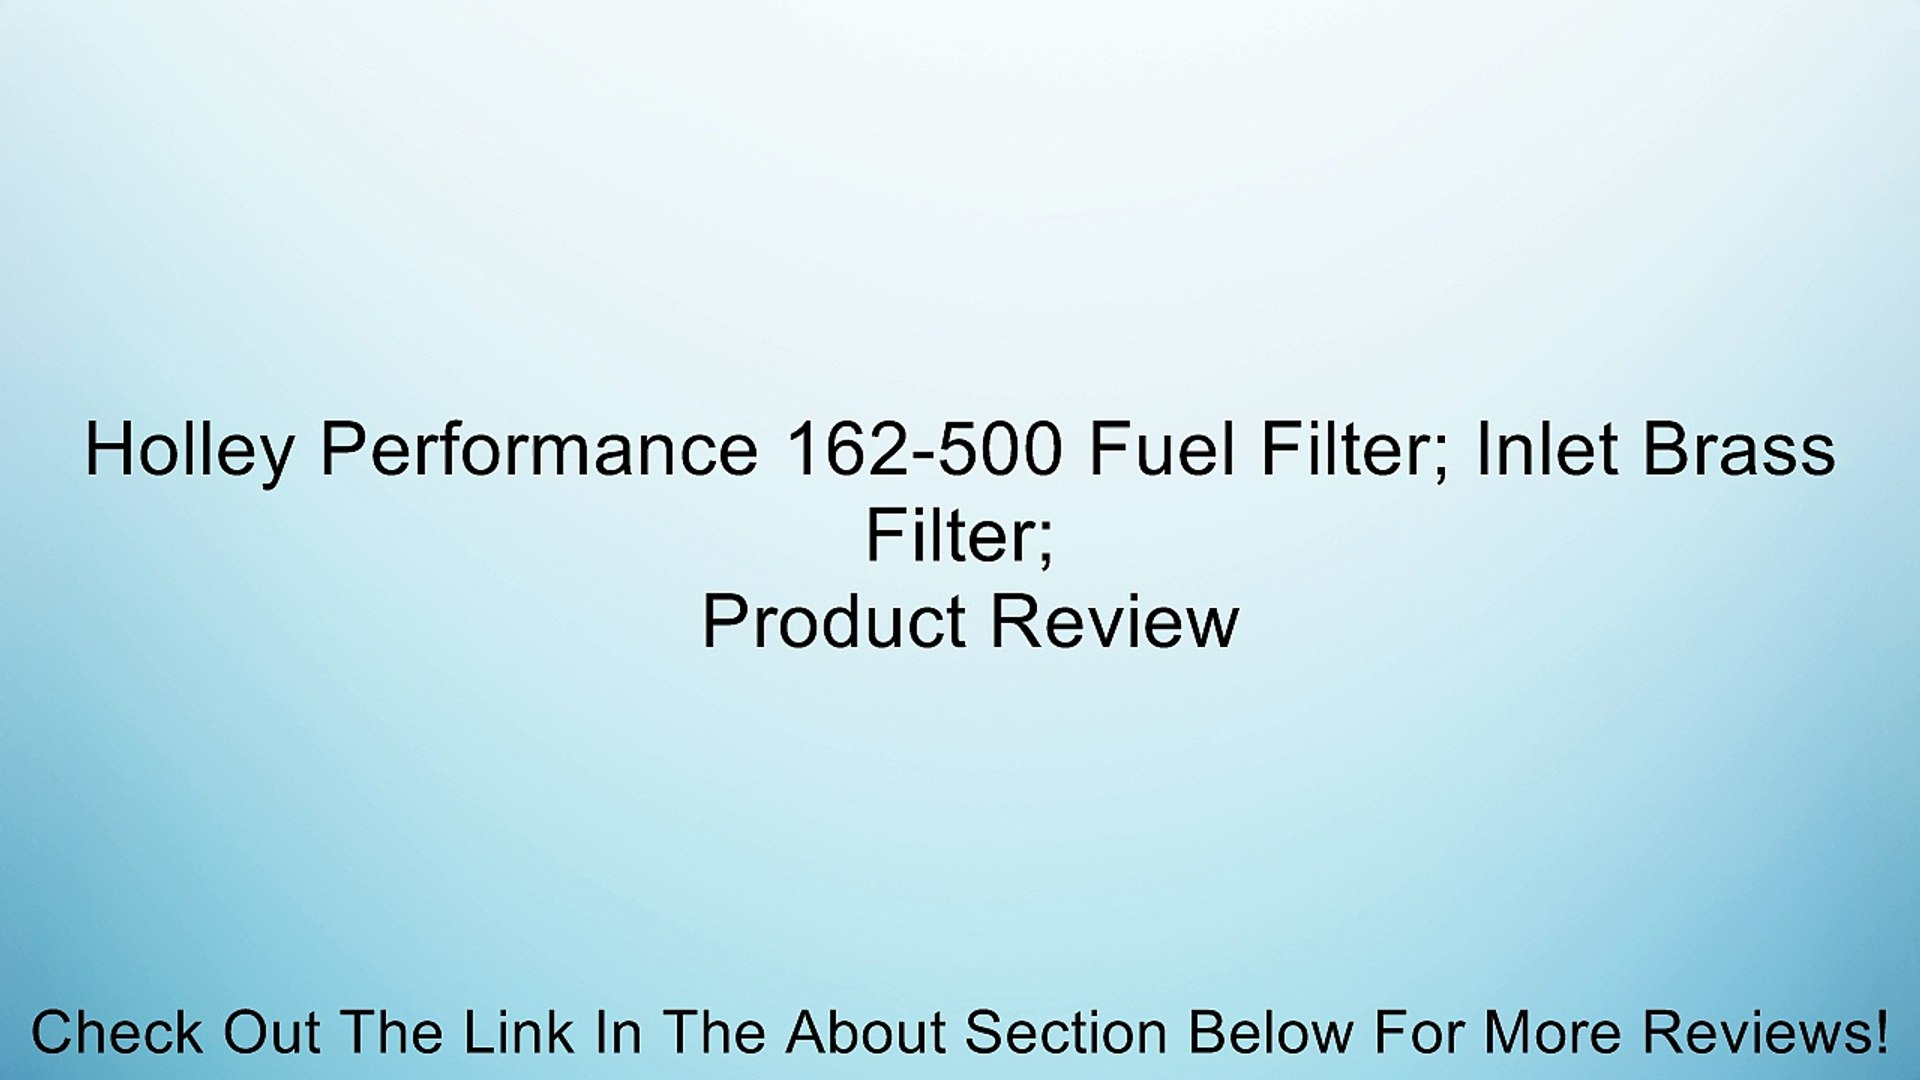 Holley 162-500 Fuel Filter